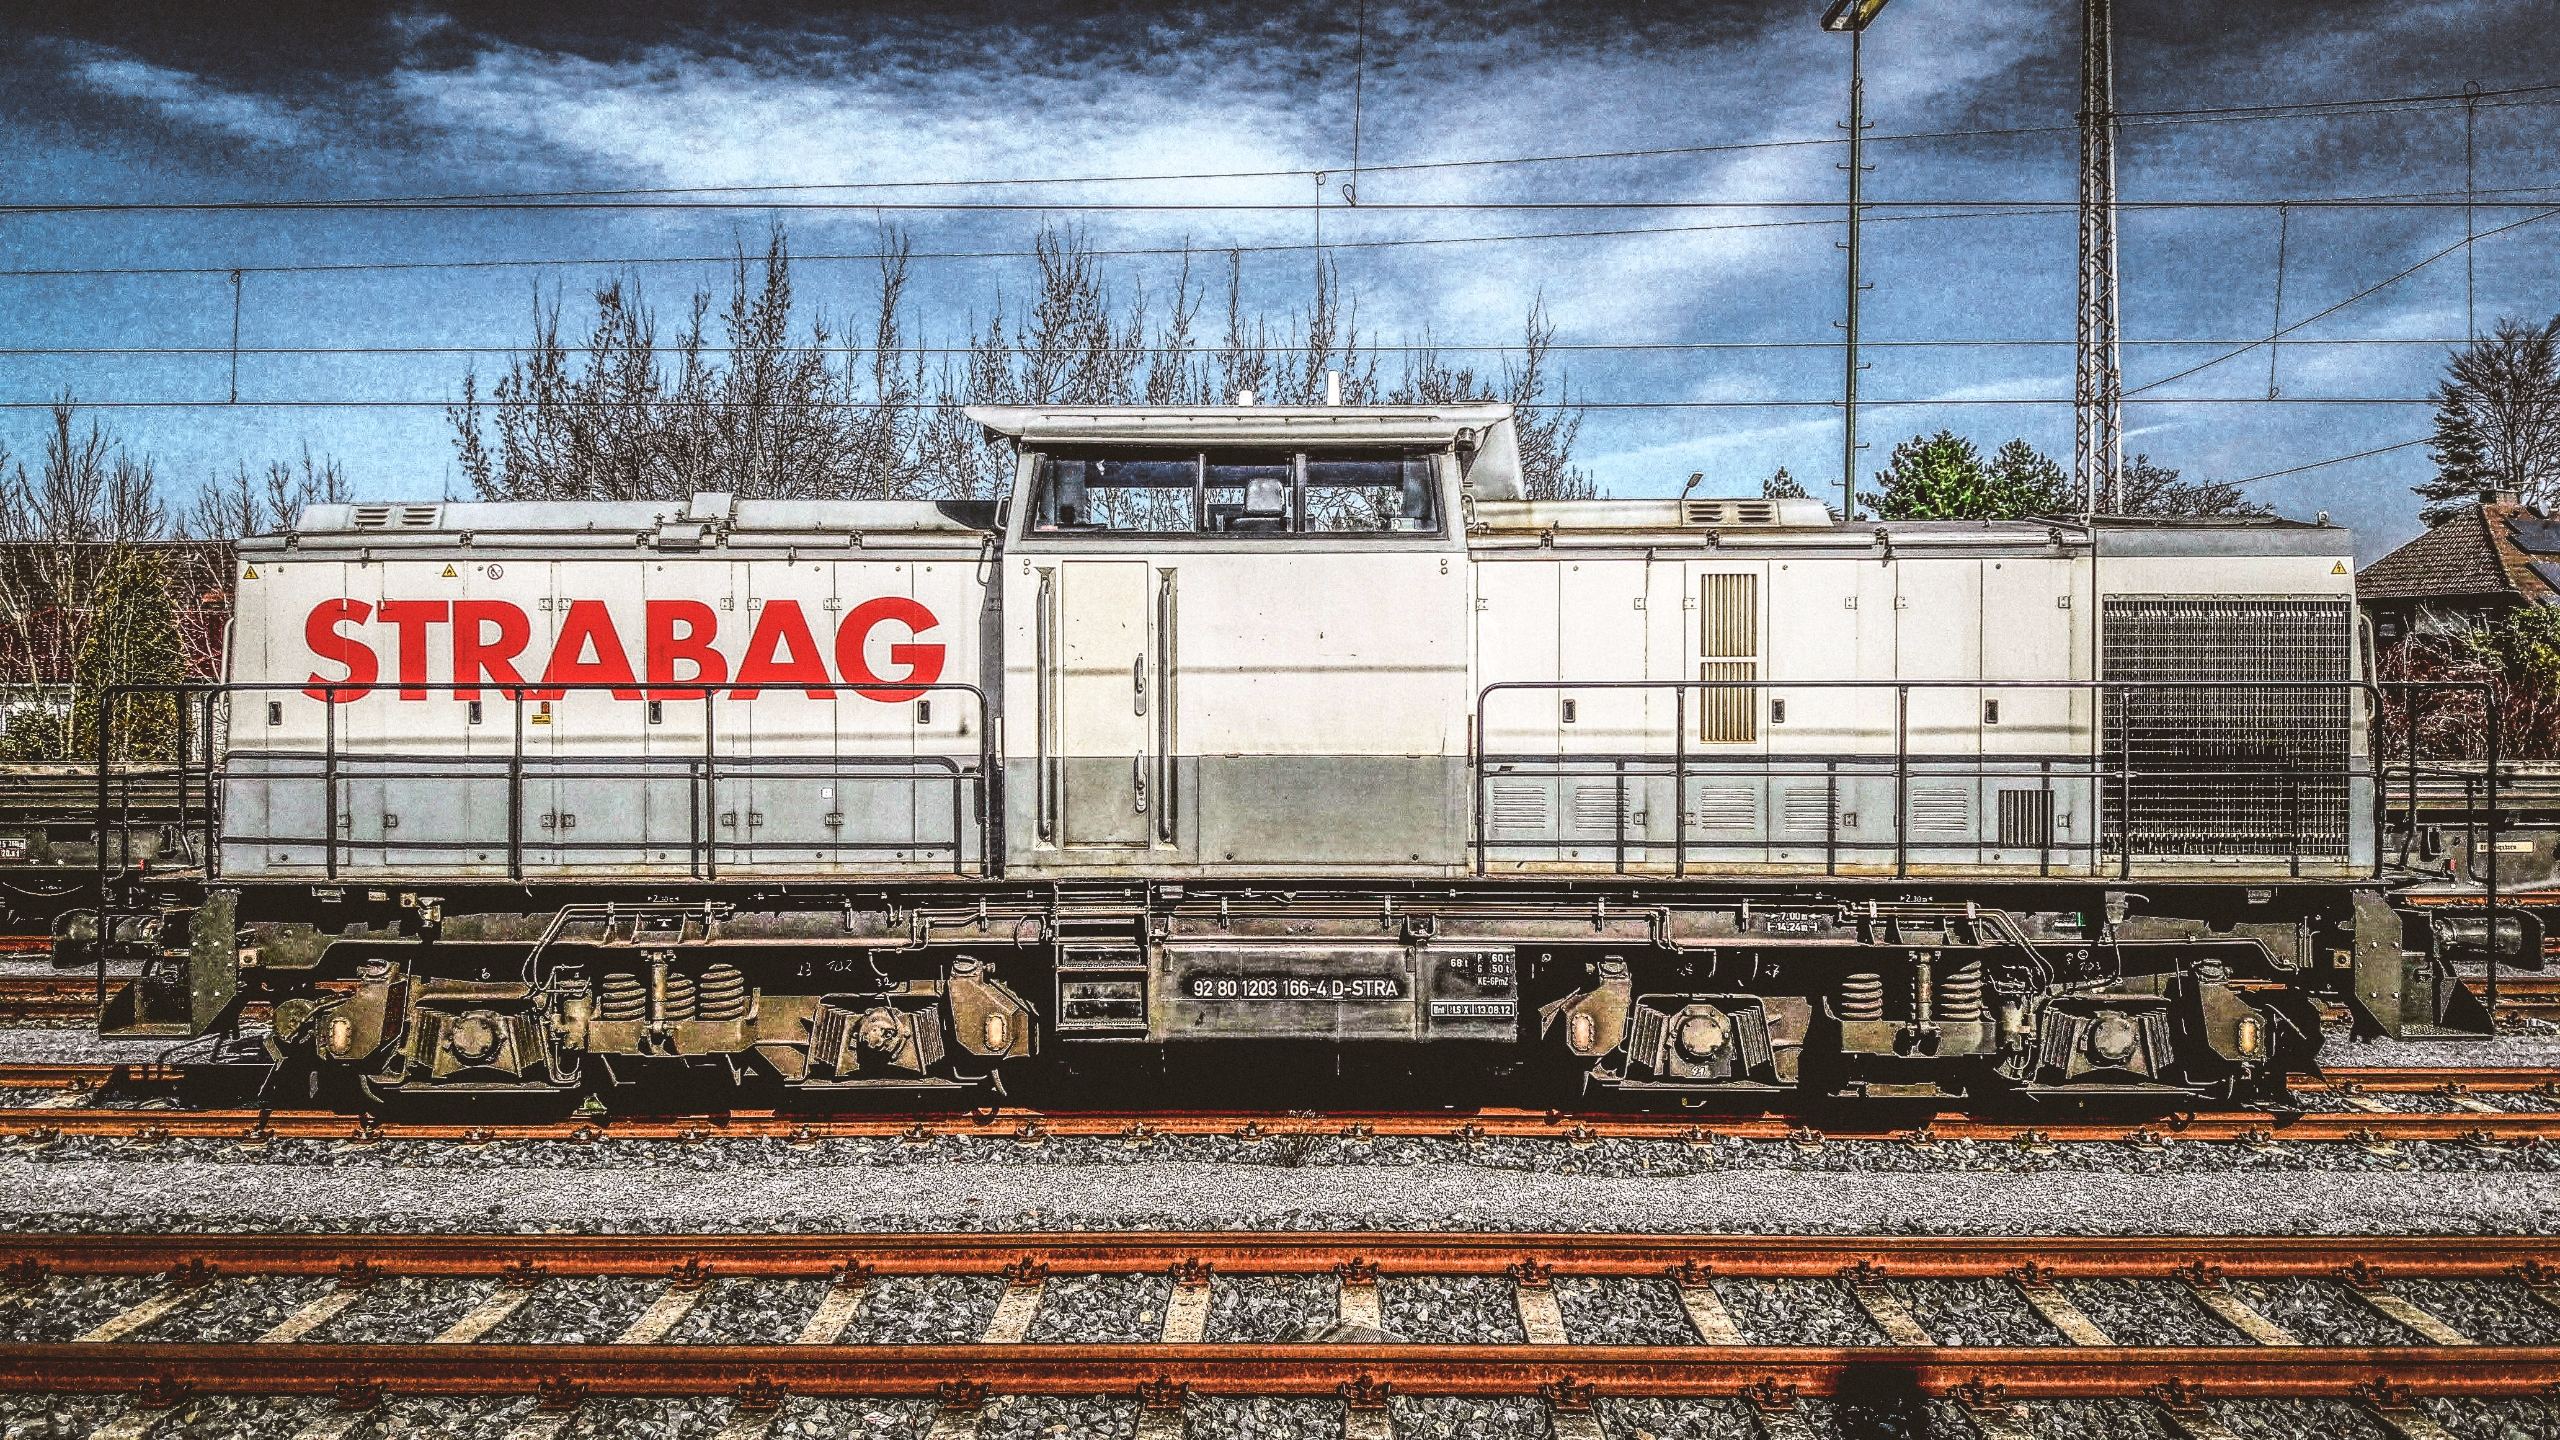 STRABAG - transportation, railroad - klausheeskens | ello